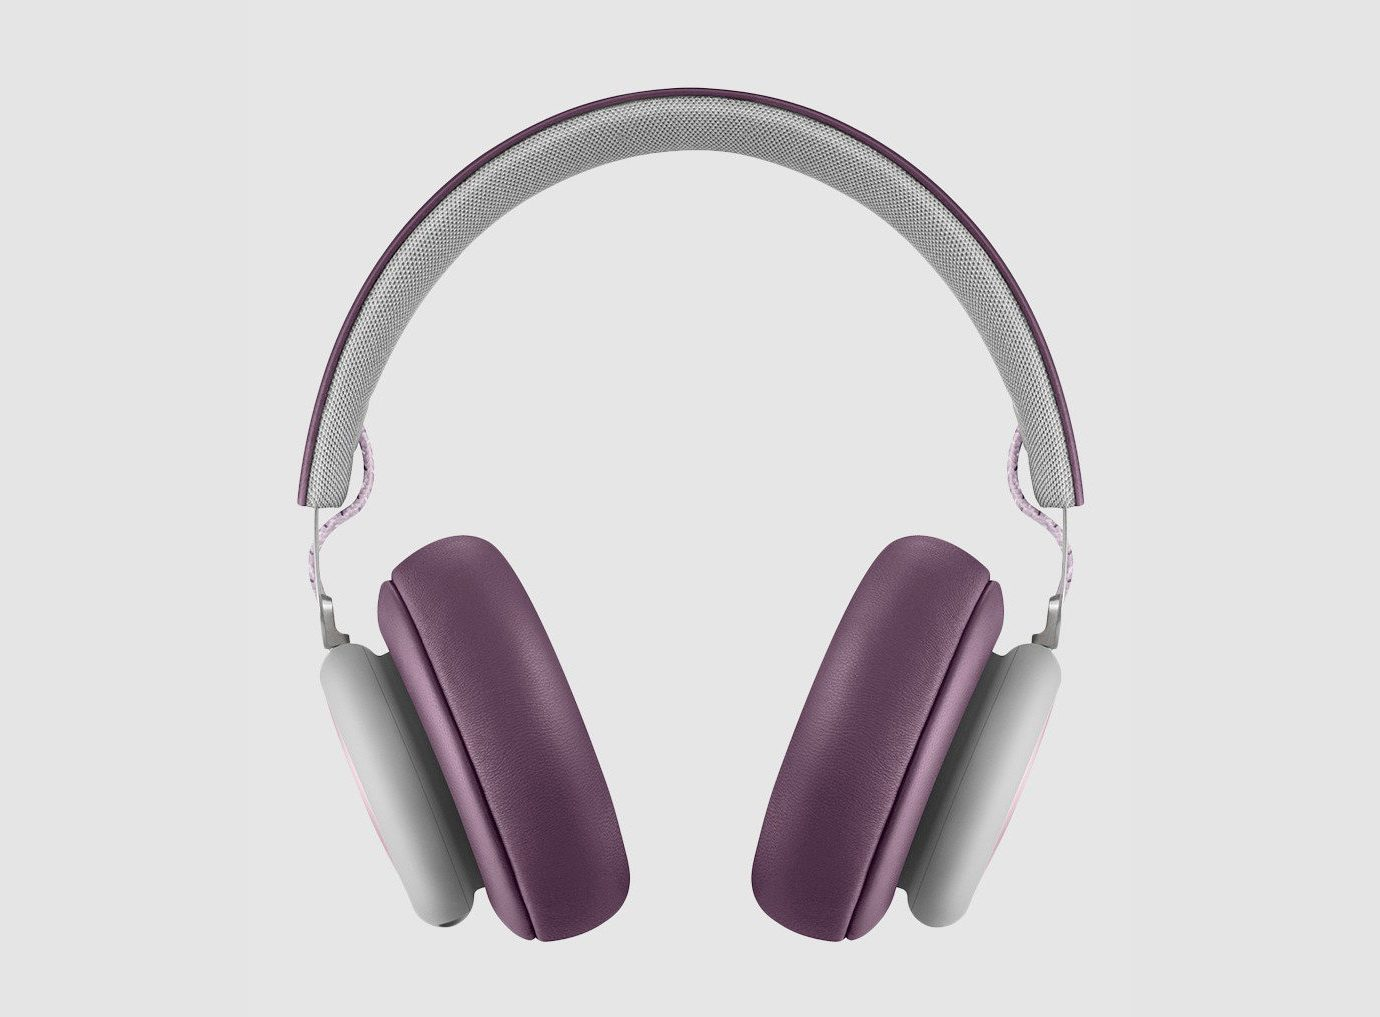 Gift Guides Style + Design Travel Shop headphones purple technology audio equipment electronic device audio violet product design product headset magenta